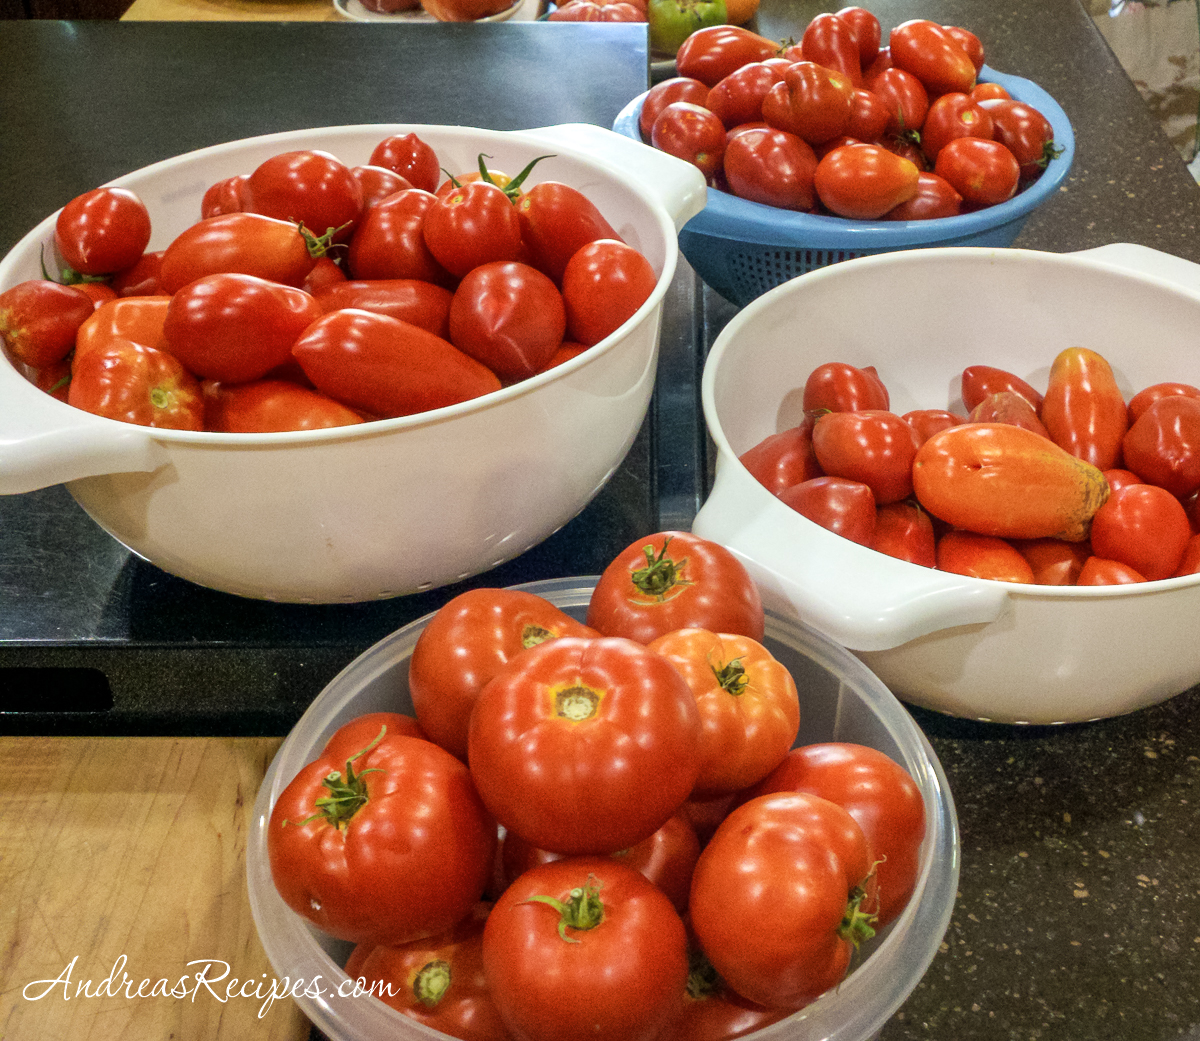 Tomatoes in colanders on the kitchen counter - Andrea Meyers